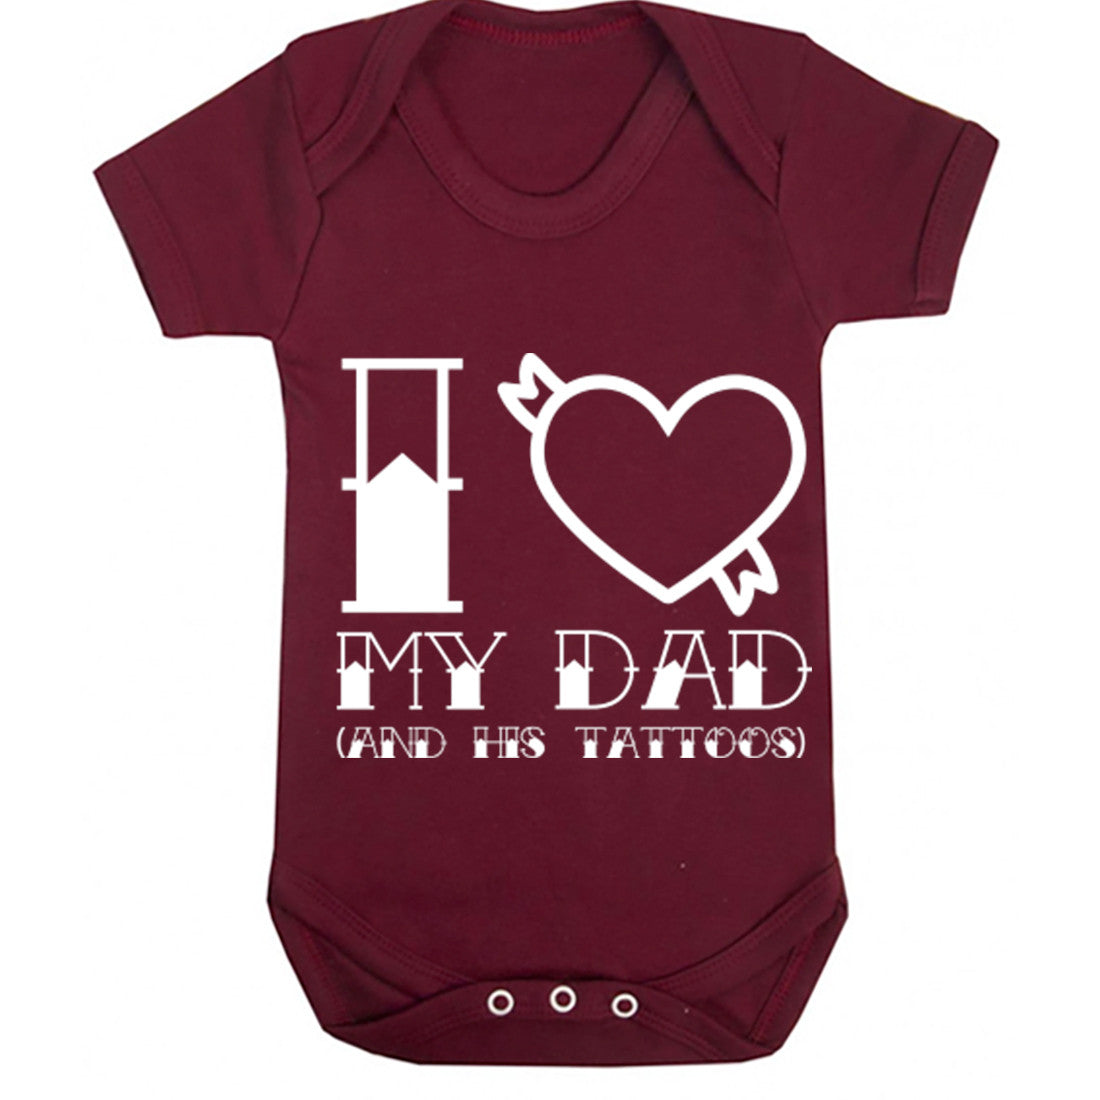 I Love Dad And His Tattoos Baby Vest K0349